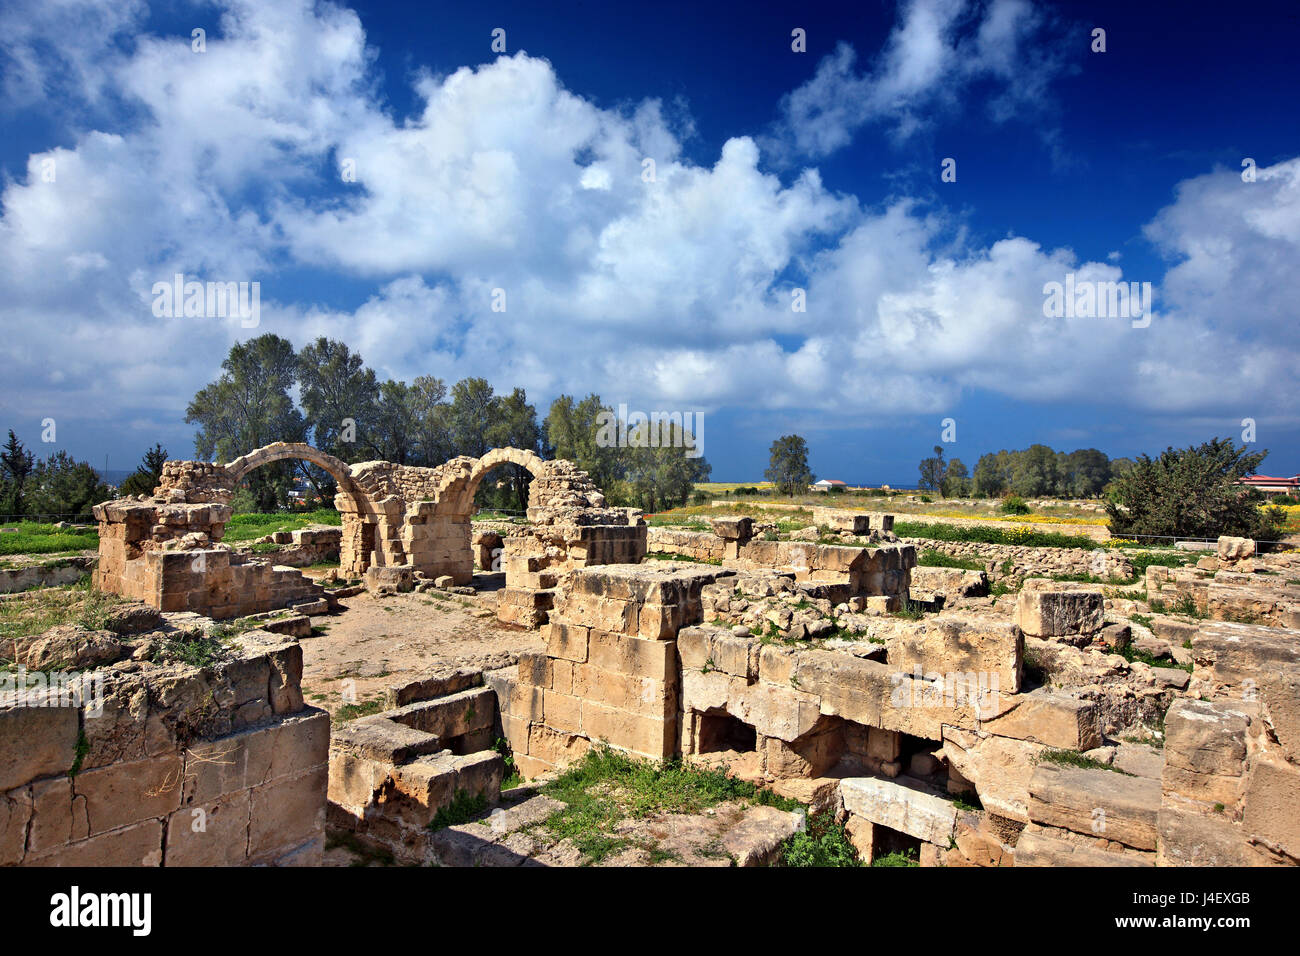 The medieval castle 'Saranta Kolones' ('Forty Columns'), at the Archaeological Site ('Park') - Stock Image